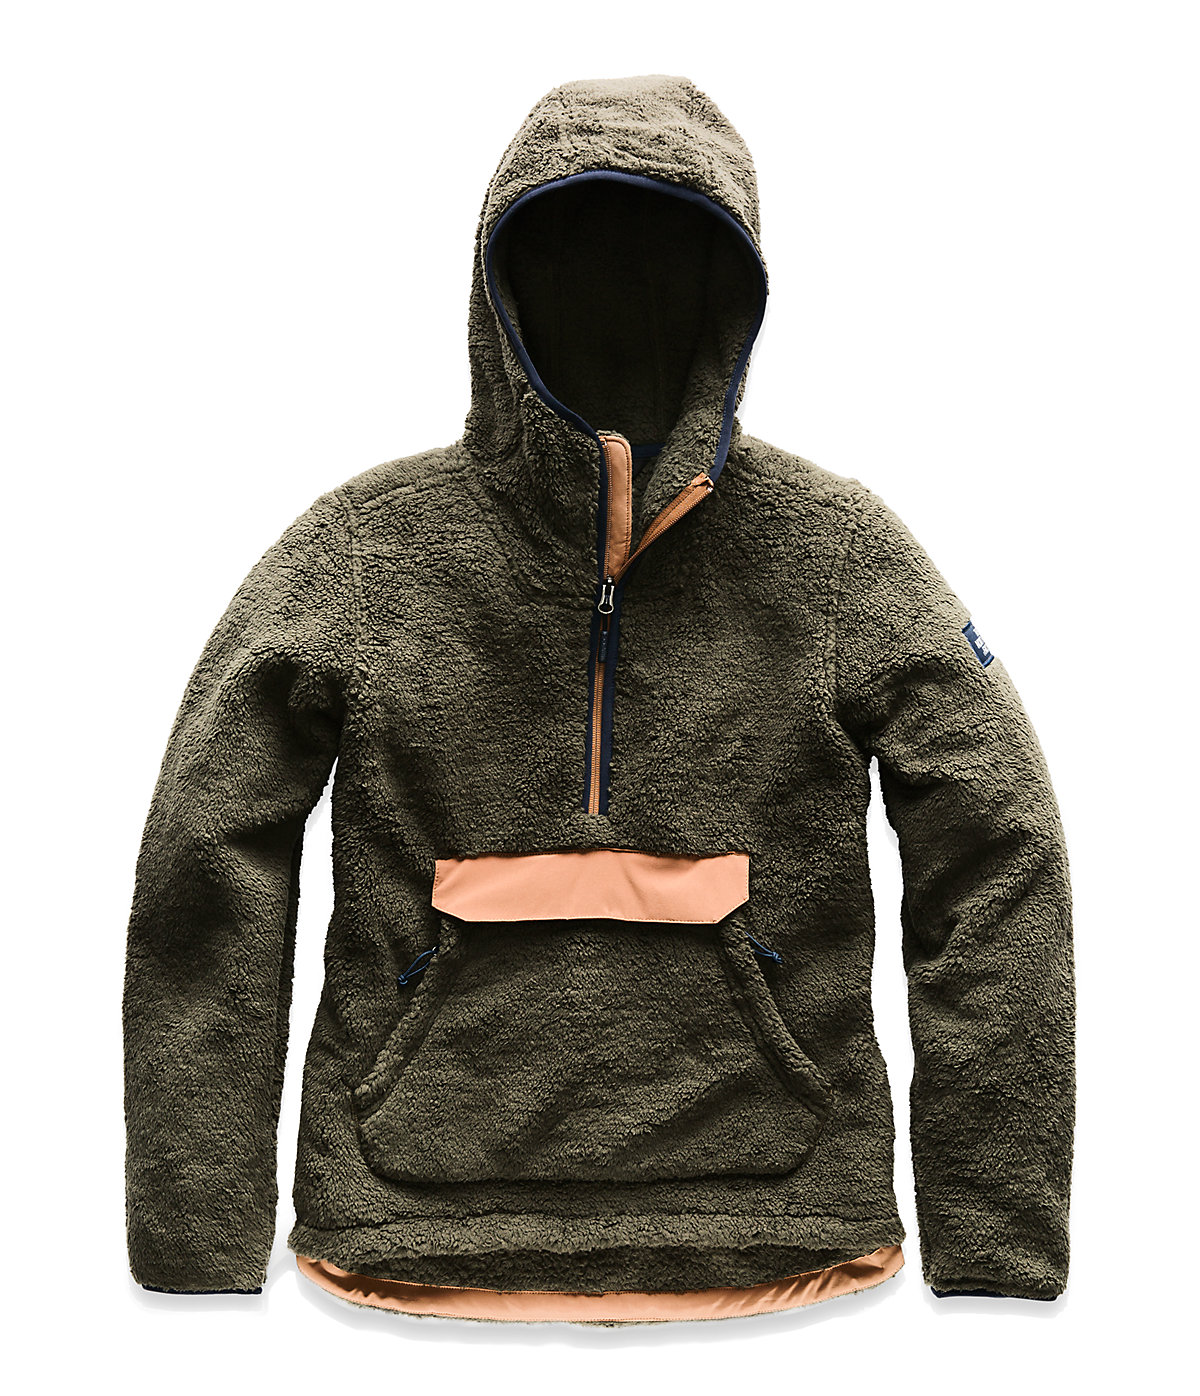 854e5aed4 Women's campshire pullover hoodie in 2019 | Products | Hoodies ...